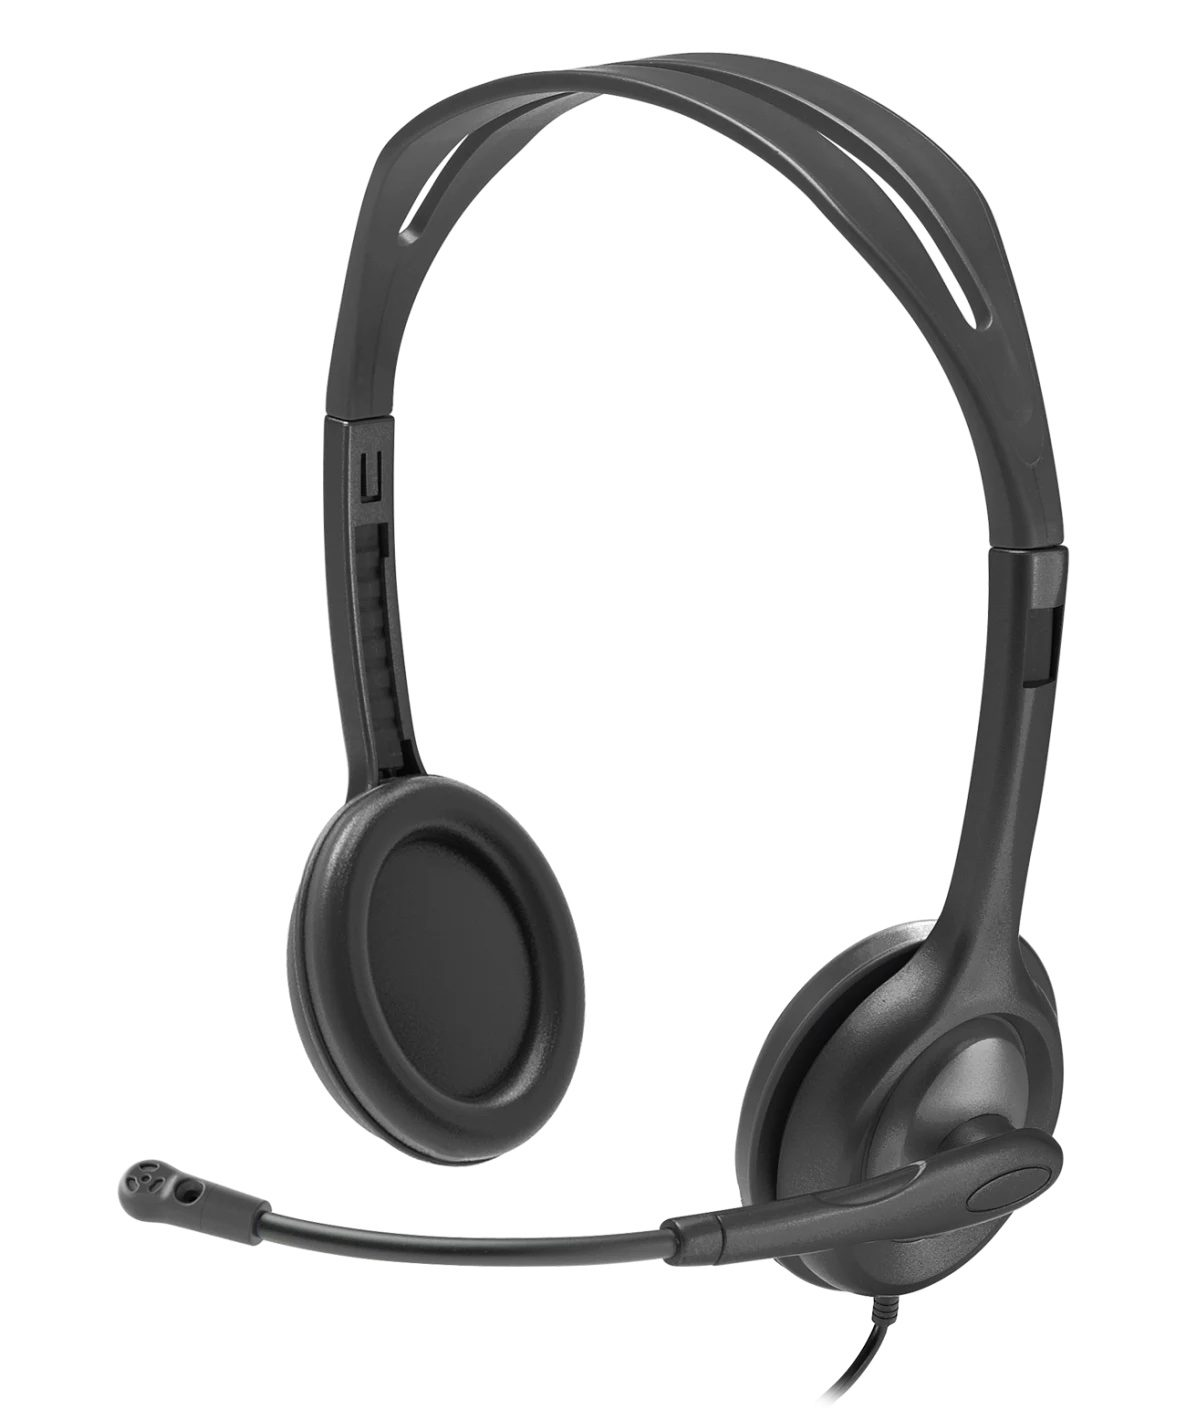 Logitech H111 headset for students